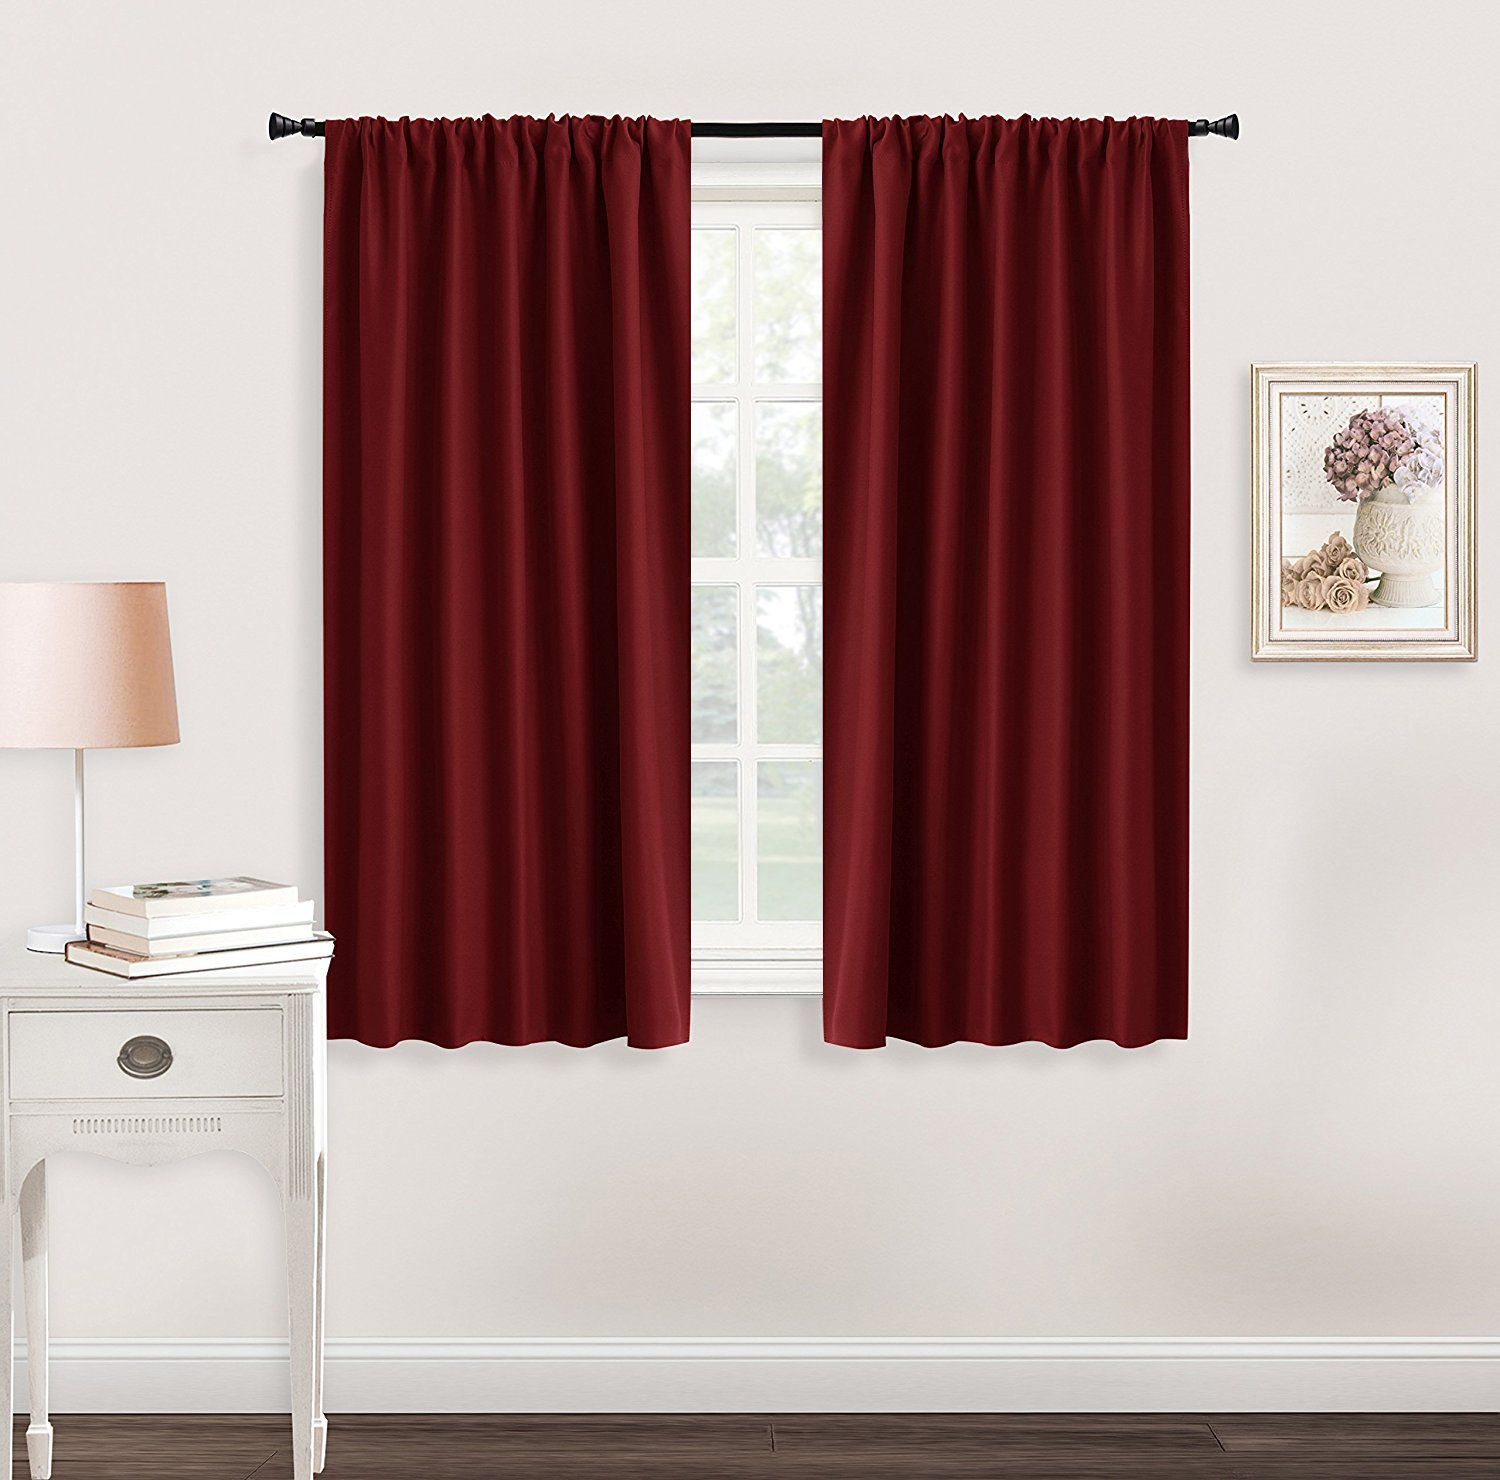 curtains amazon height buy at x pvc transparent india dp ac retailertm width e prices online curtain in low